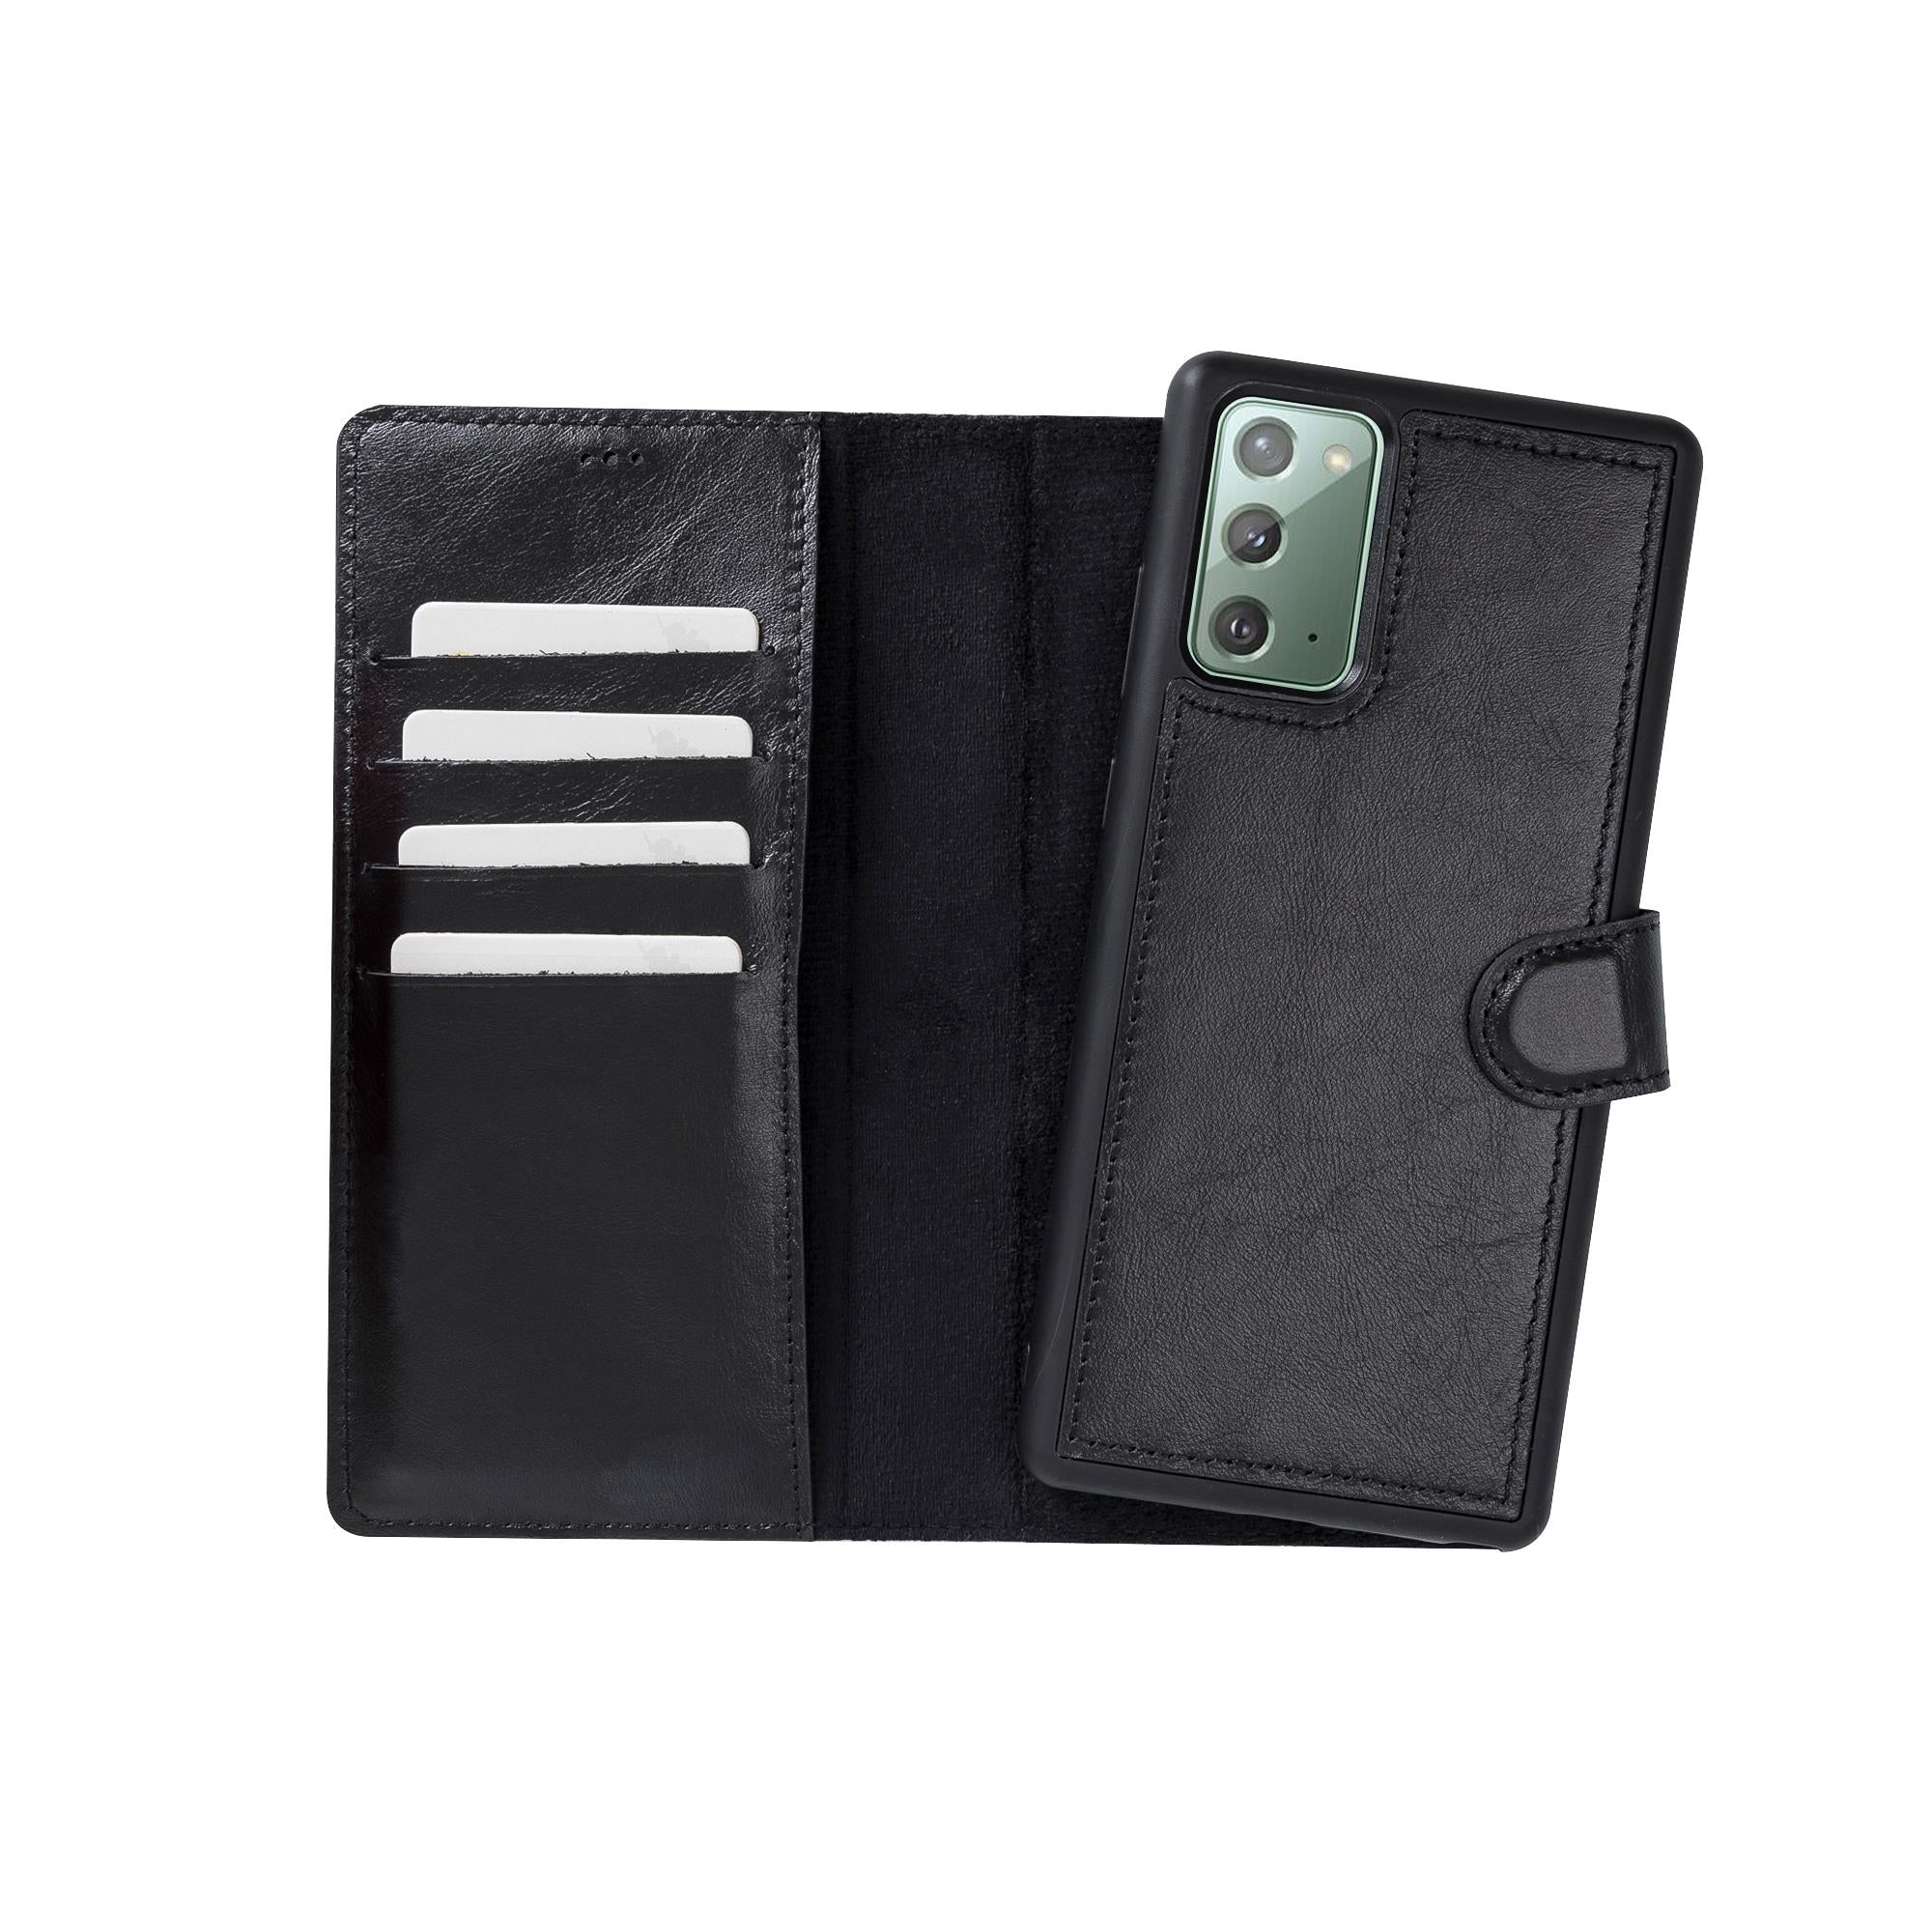 "Magic Magnetic Detachable Leather Wallet Case for Samsung Galaxy Note 20 / Note 20 5G (6.7"") - BLACK - saracleather"